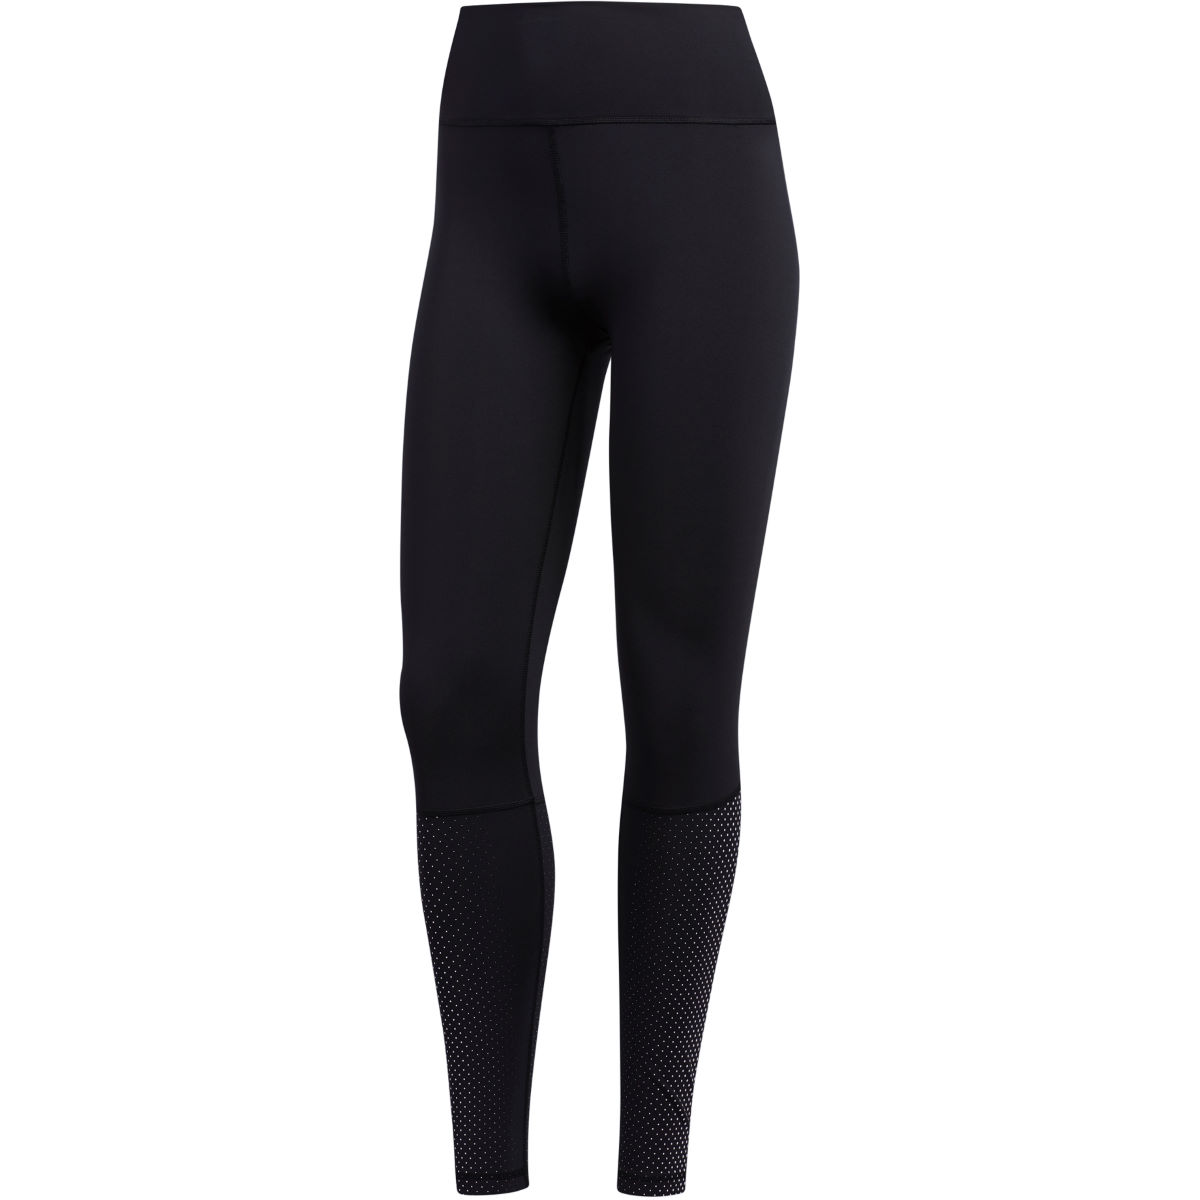 adidas Women's Believe This 7/8 Tights   Tights